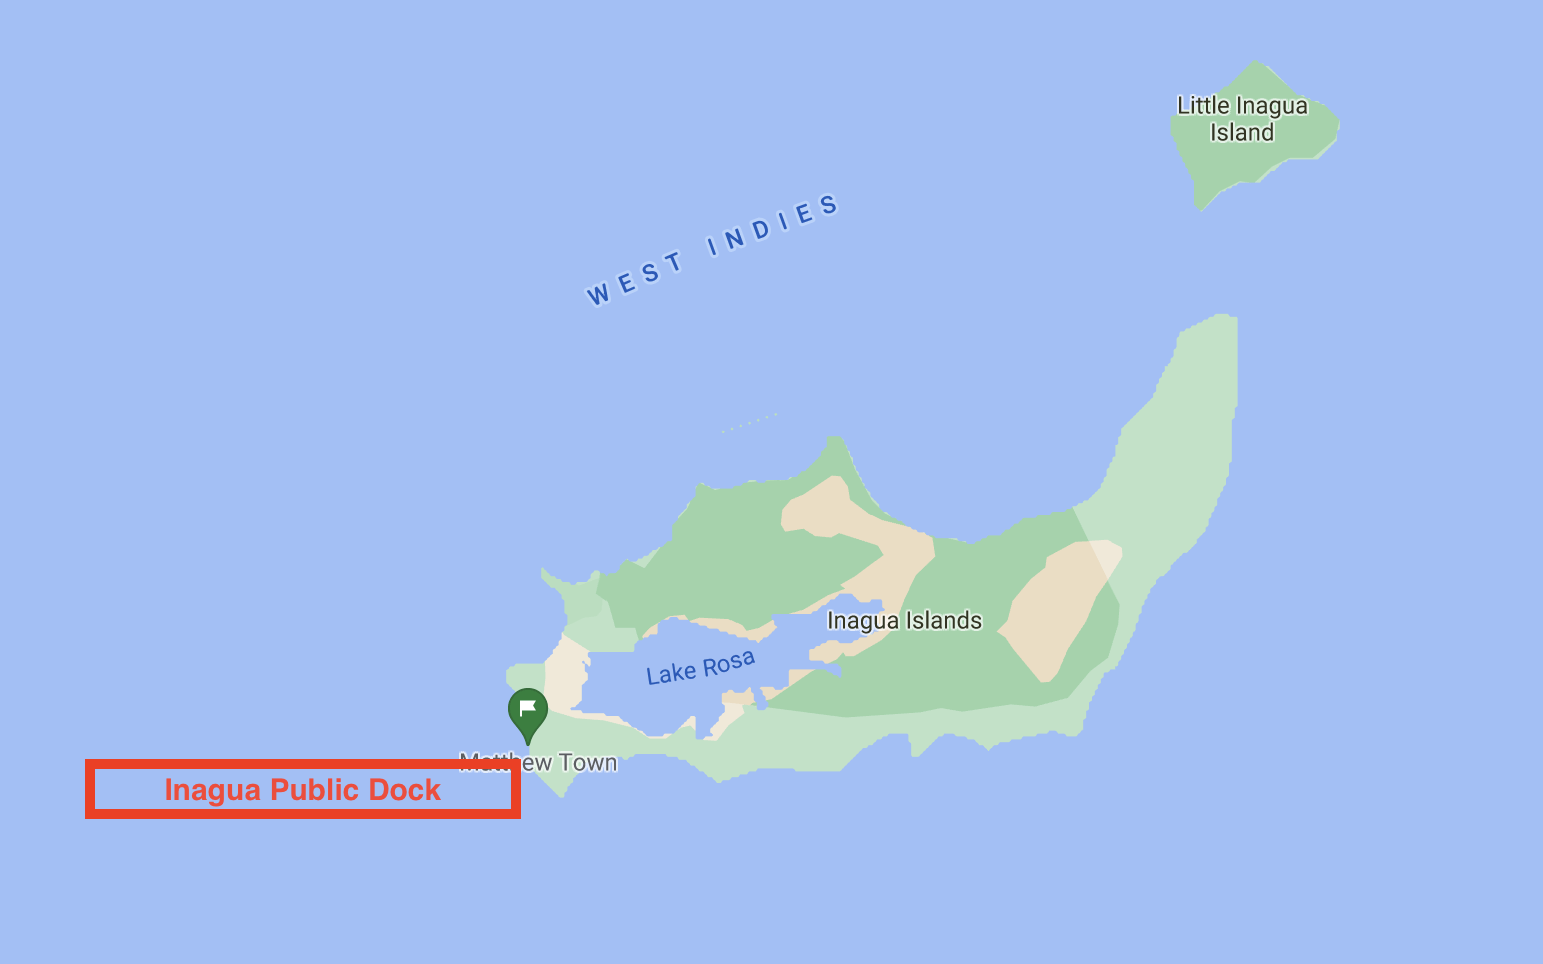 Map of Inagua ports of entry